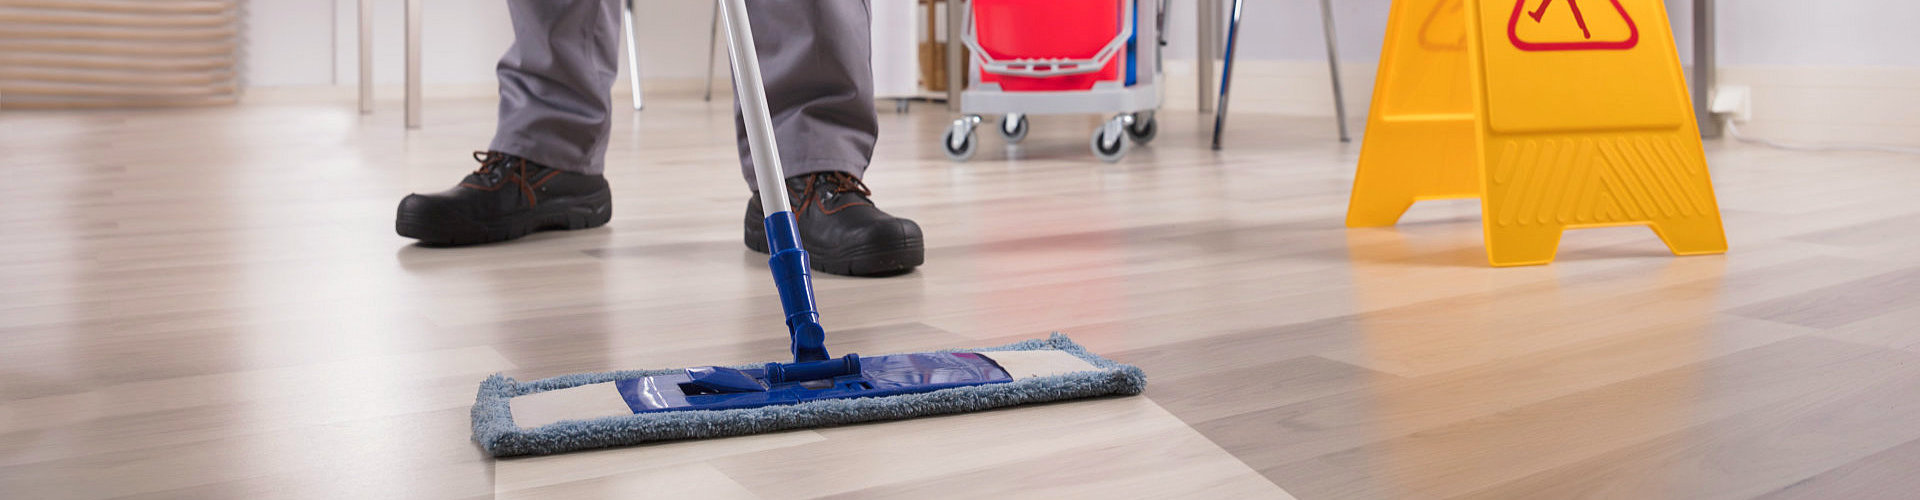 floor cleaning using a mop